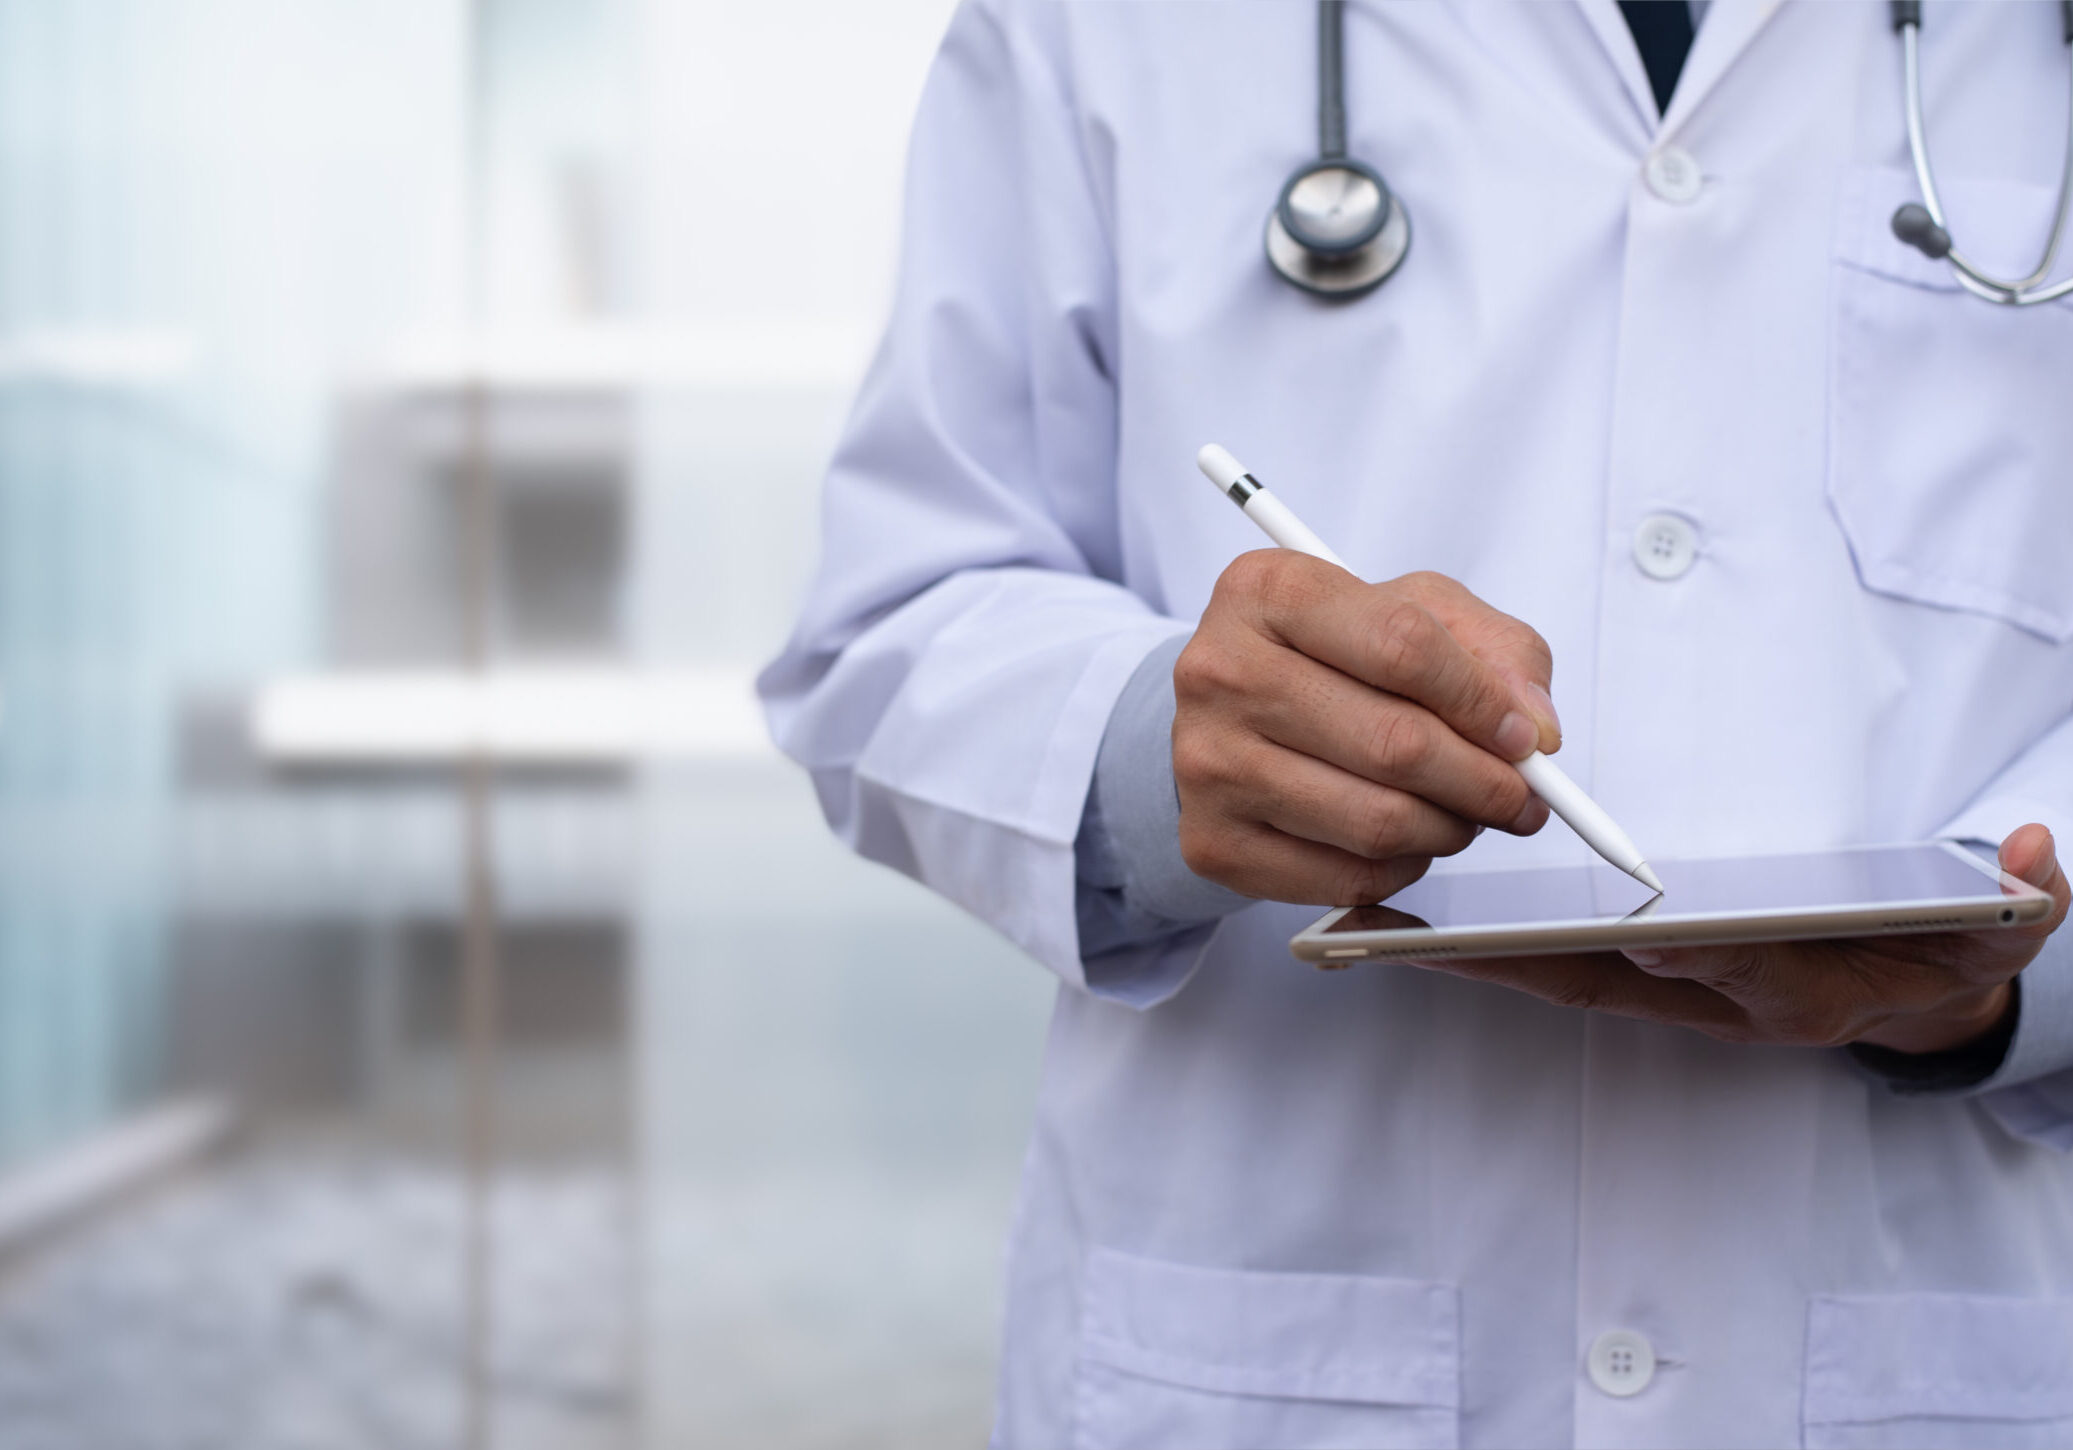 Doctor using electronic pen on  digital tablet, reviewing  medical record wrting prescription on digital document with hospital background, Electronic medical record system, health and technology, telemedicine concept